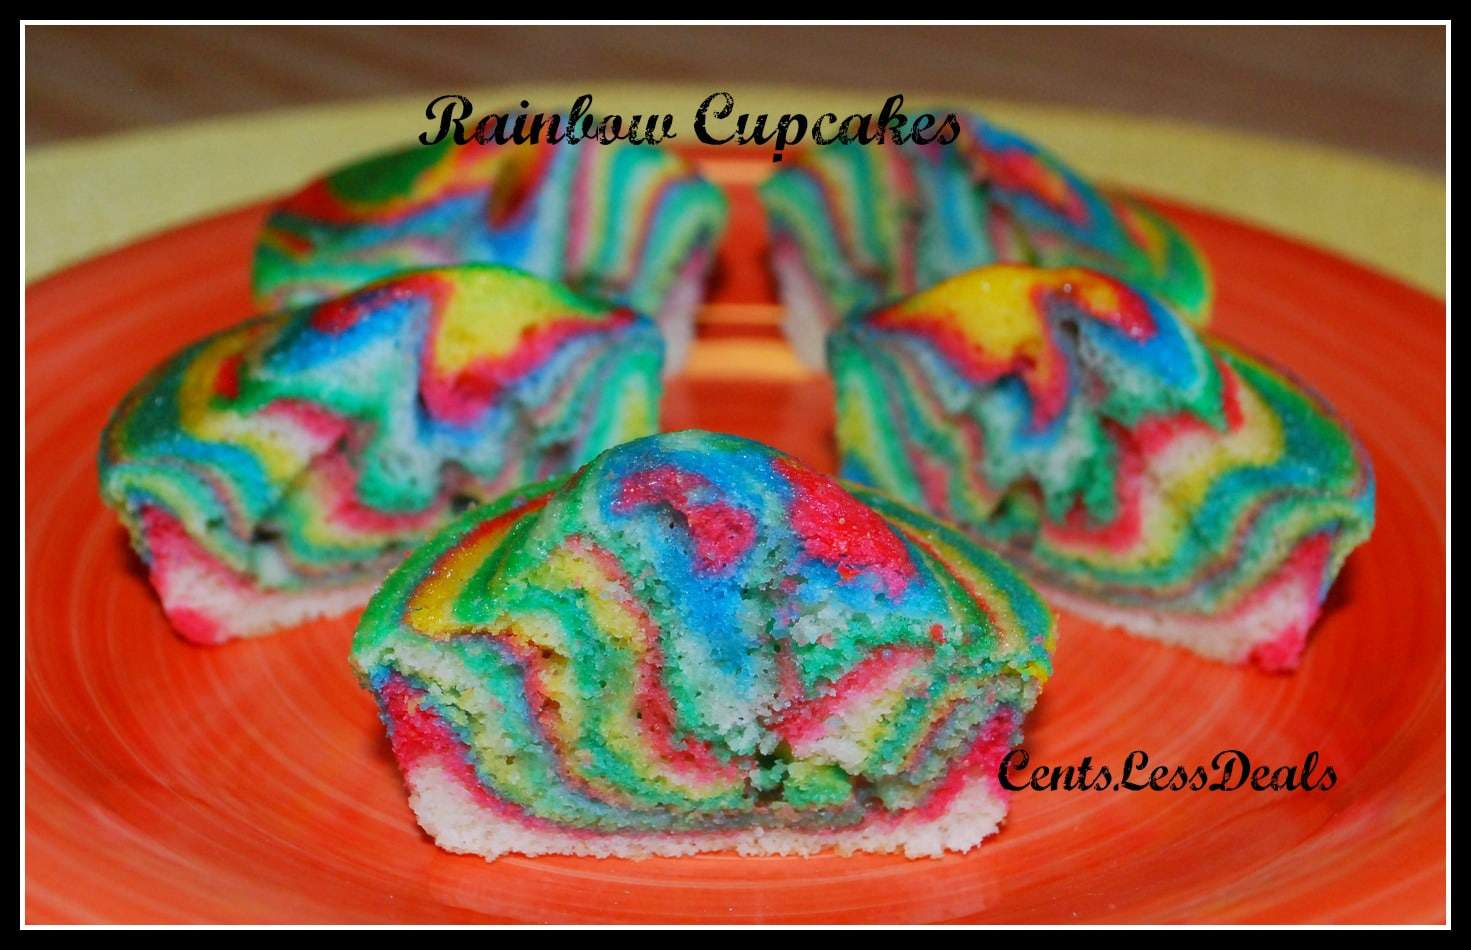 rainbow cupcakes on a red plate with a title